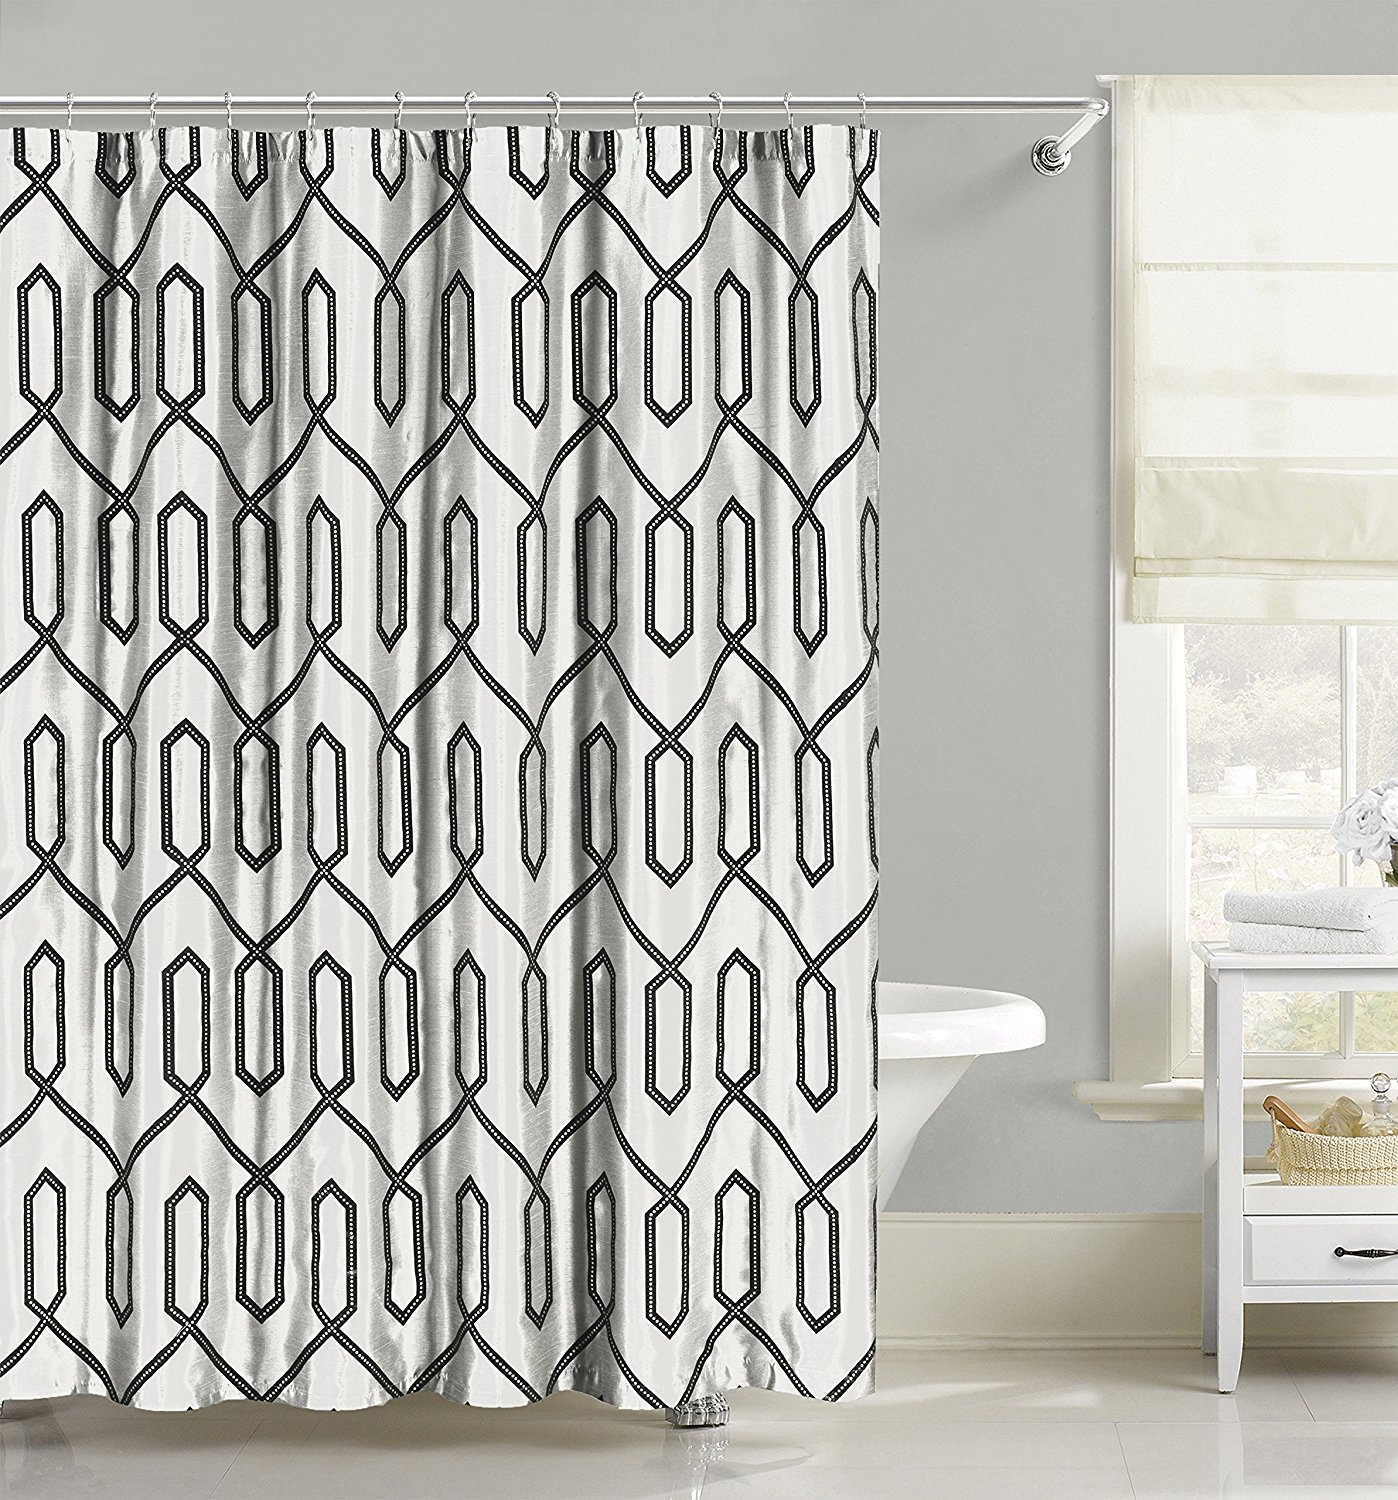 Fabric Shower Curtain With Vine Pattern Embroidered Sheer